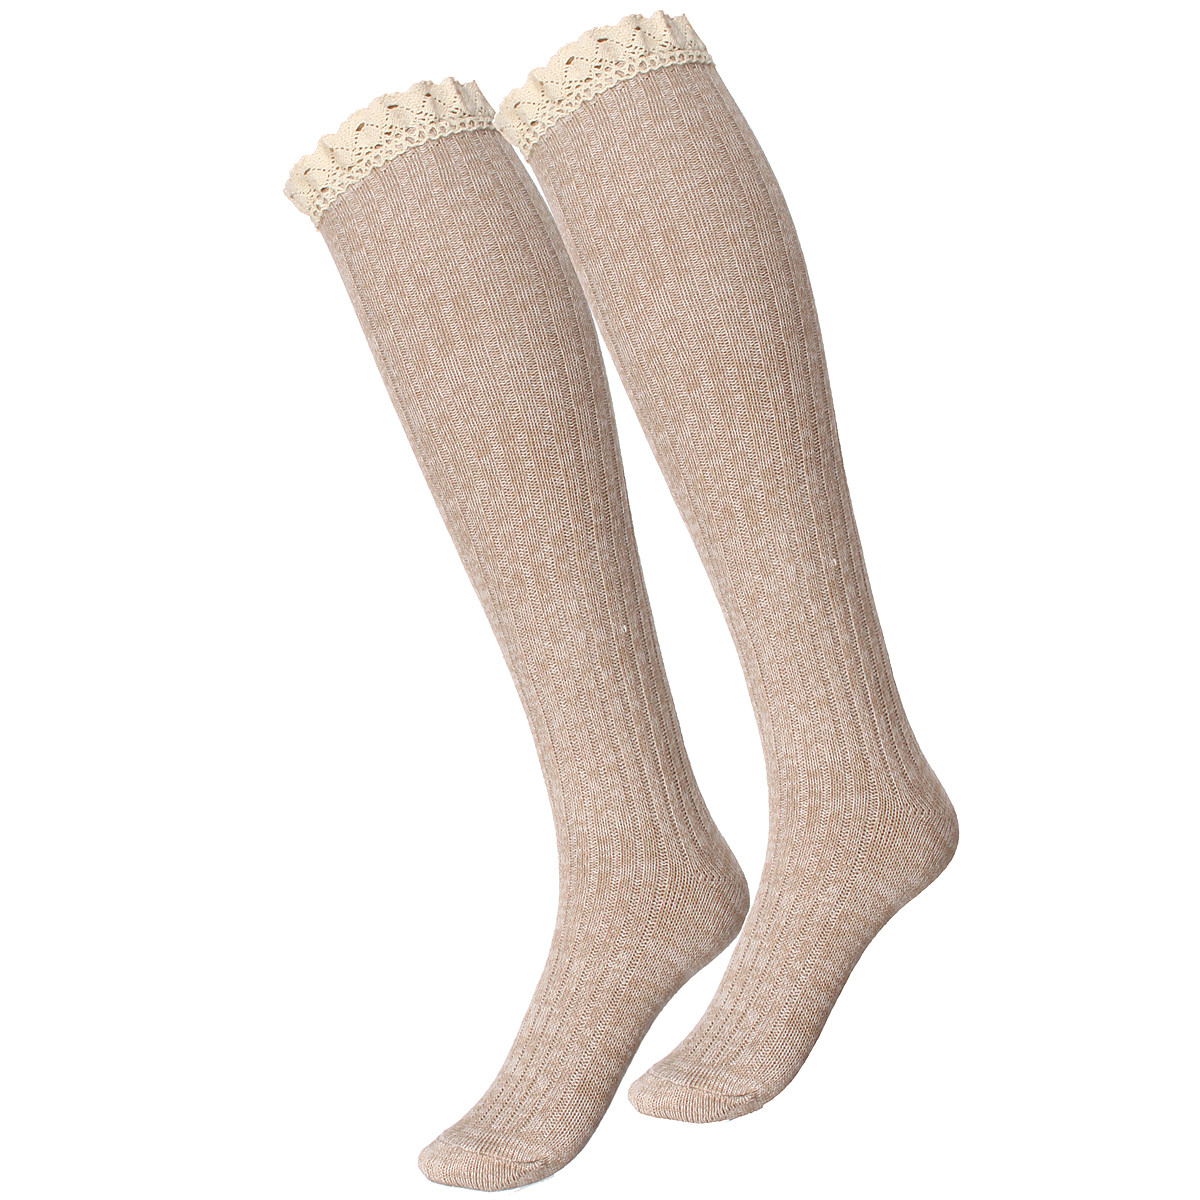 Women Girls Knitted Lace Stripe Cotton Blend Over Knee Stocking Elastic Stretchable High Tight Socks